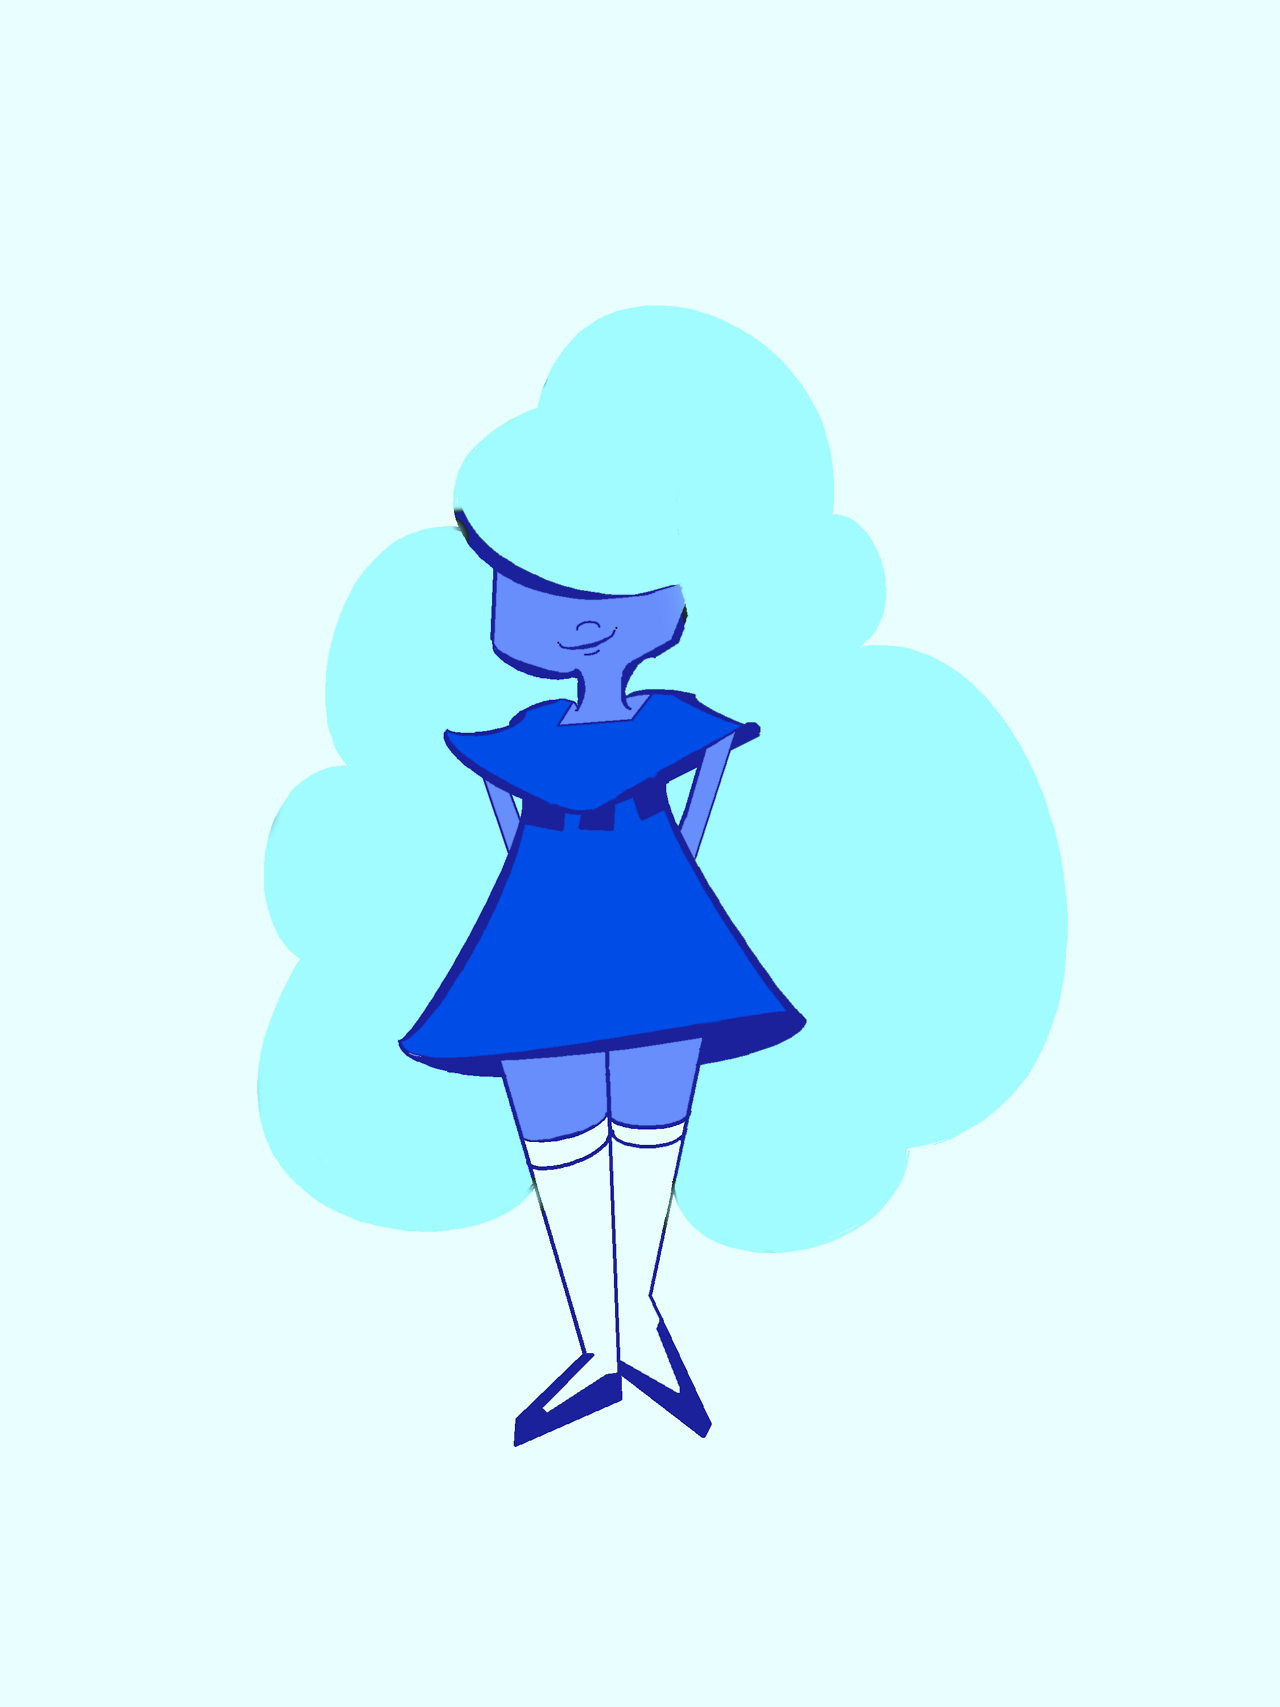 I doodled sapphire and i'm pretty happy with how it turned out! ♡